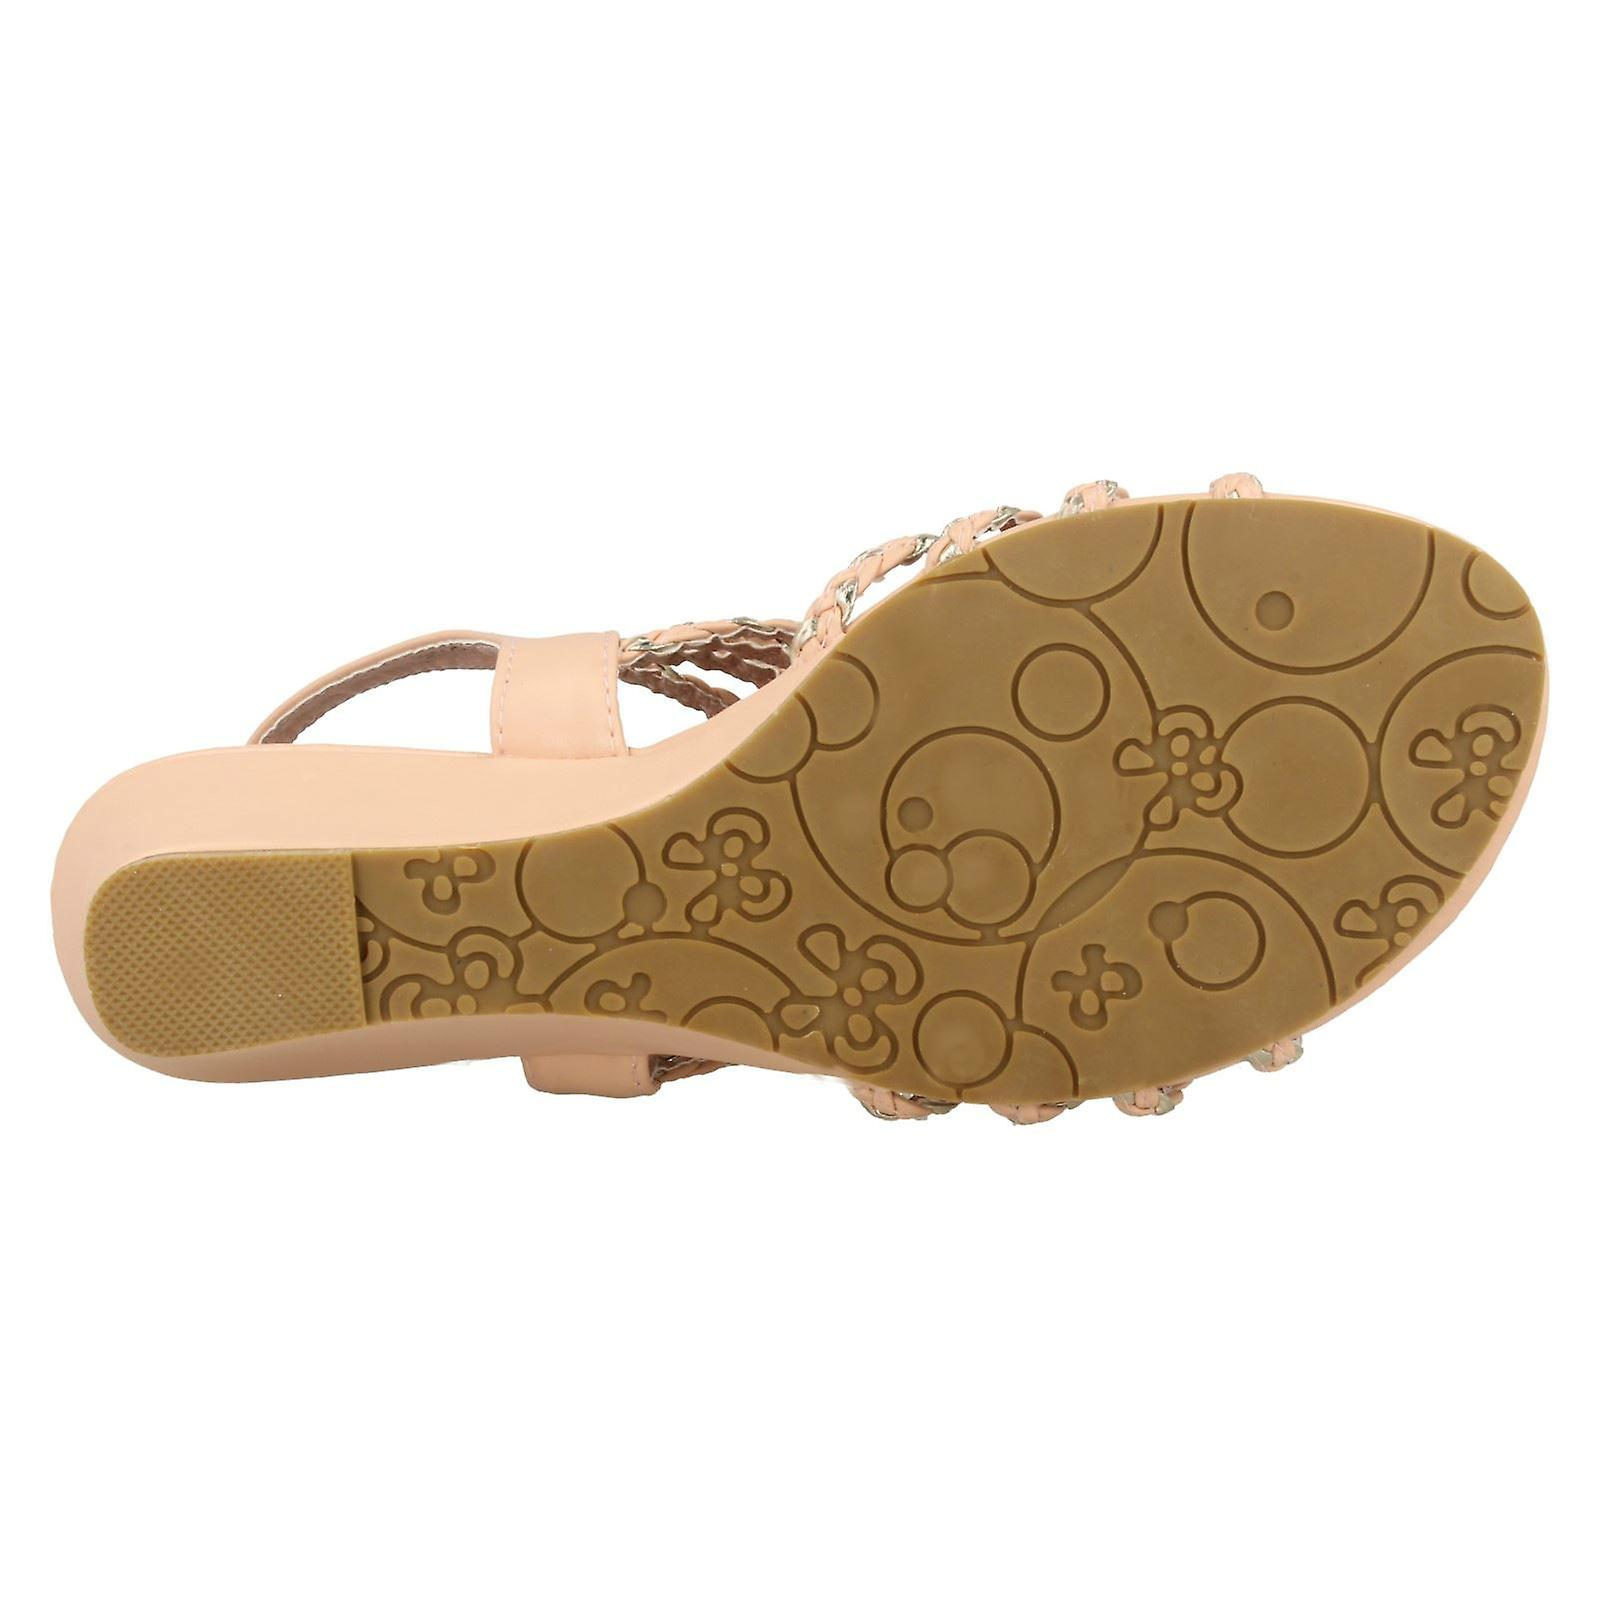 Ladies spot on Wedge sandales F10036 (abricot/or) UK 6